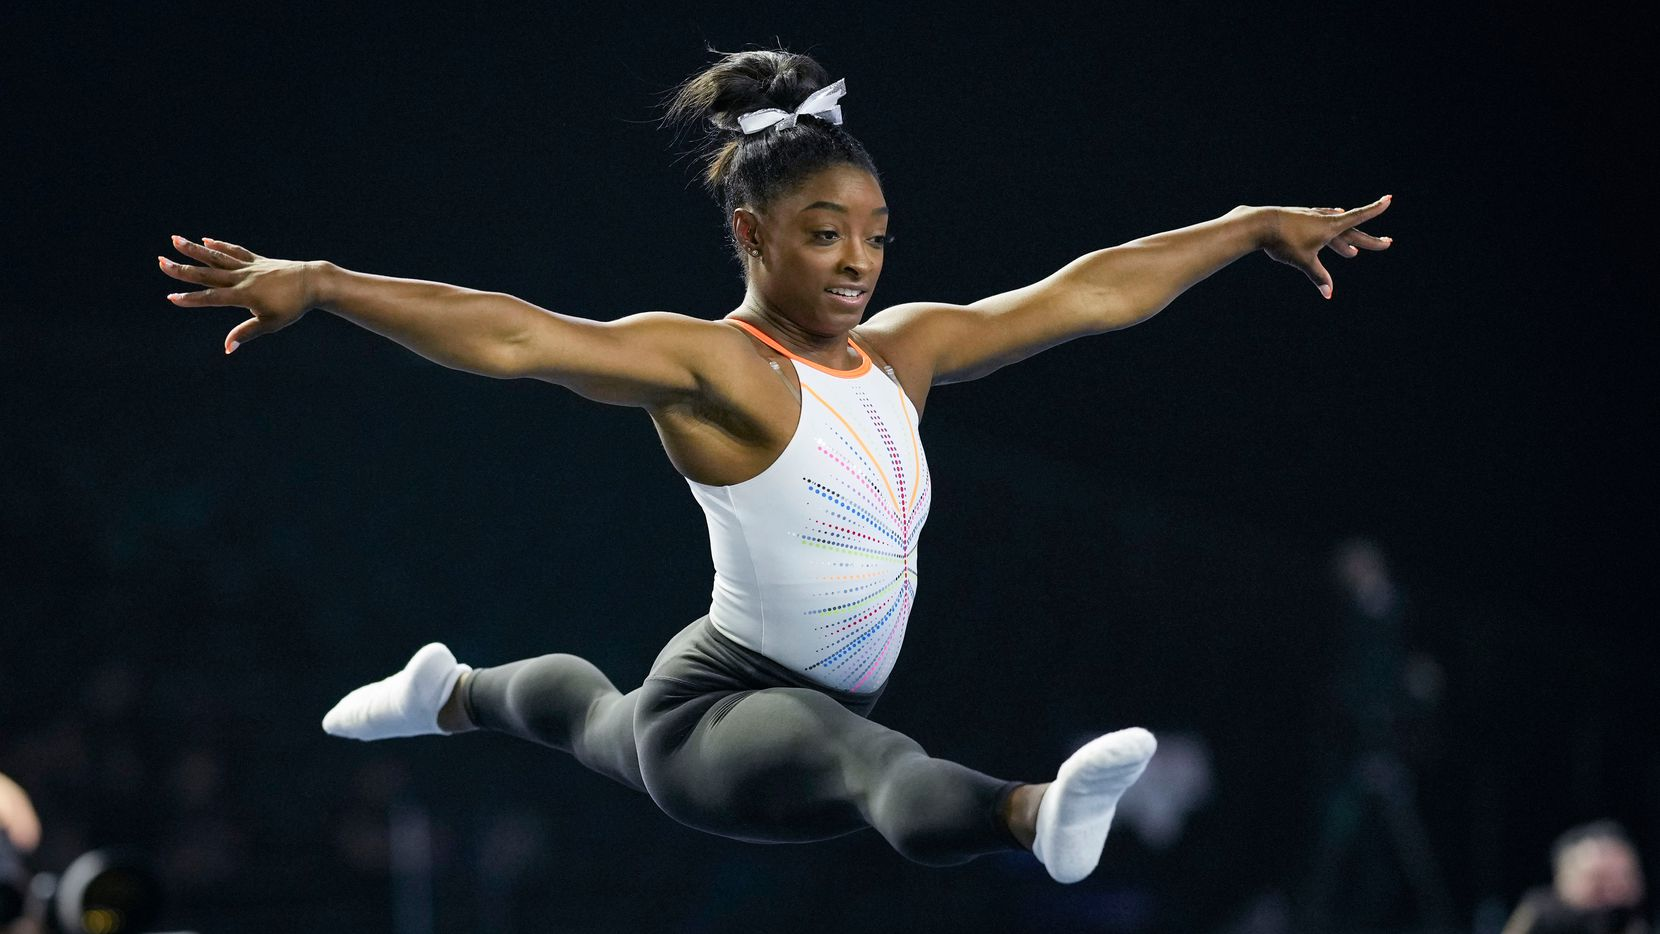 Simone Biles warms up before competing in the U.S. Classic gymnastics competition in Indianapolis, Saturday, May 22, 2021. (AP Photo/AJ Mast)